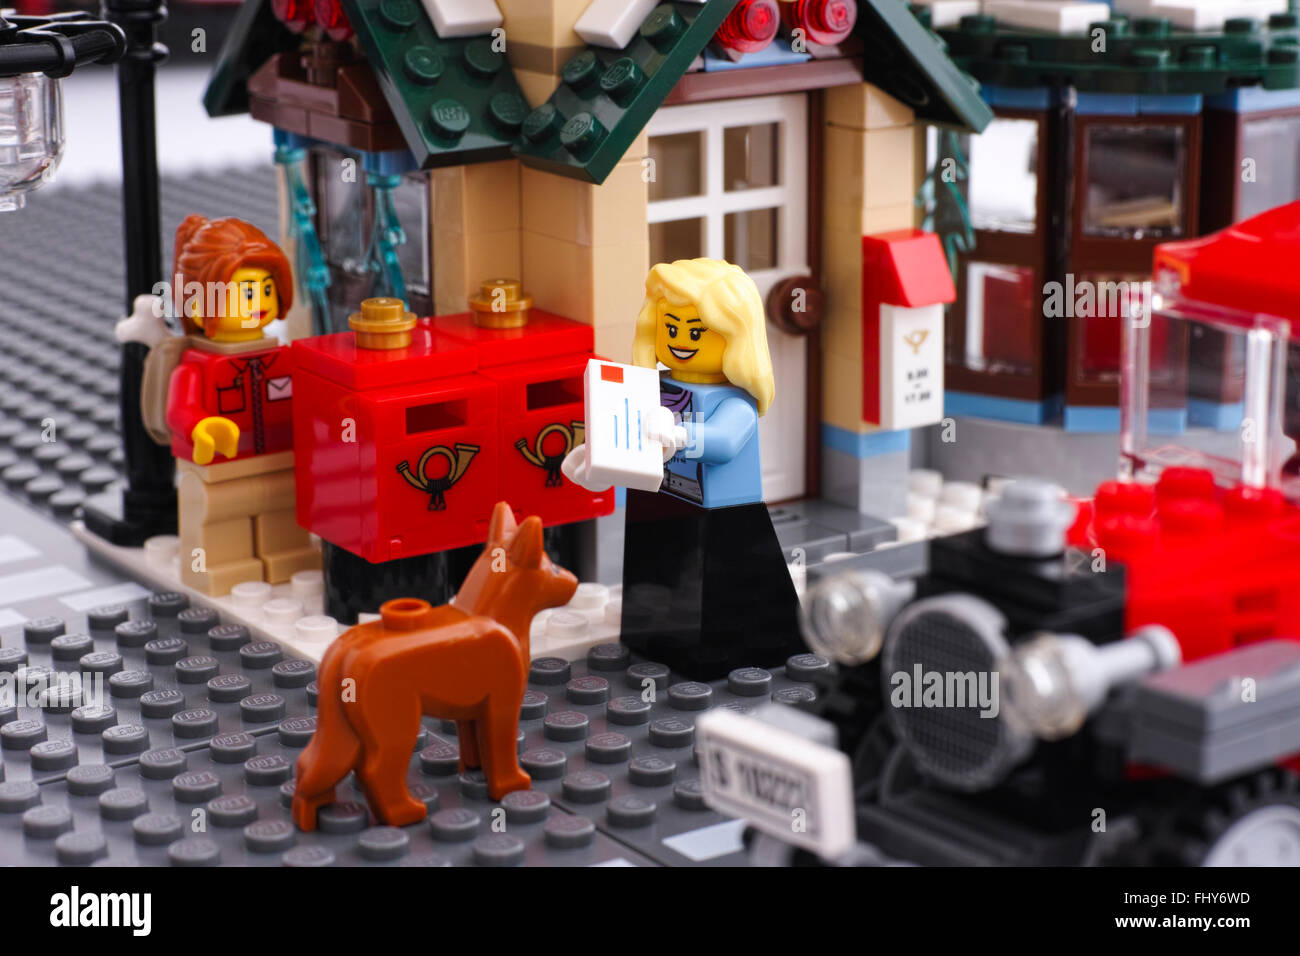 Lego Post Office In Street There Are Two Women And Dog Minifigures Near The